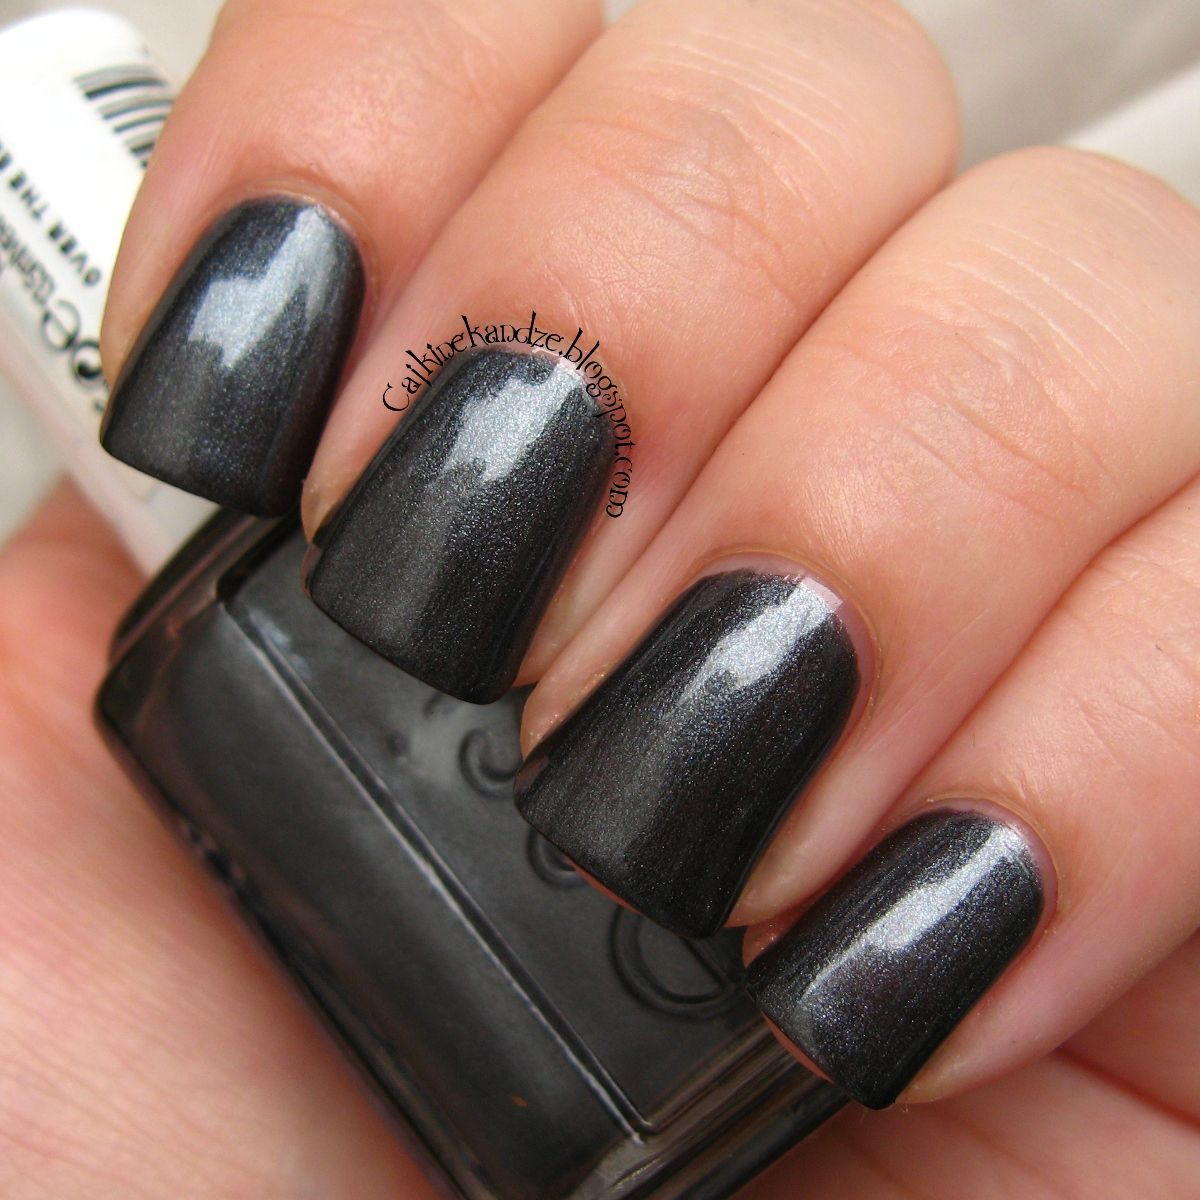 Essie Over the Edge | Nails | Pinterest | Swatch